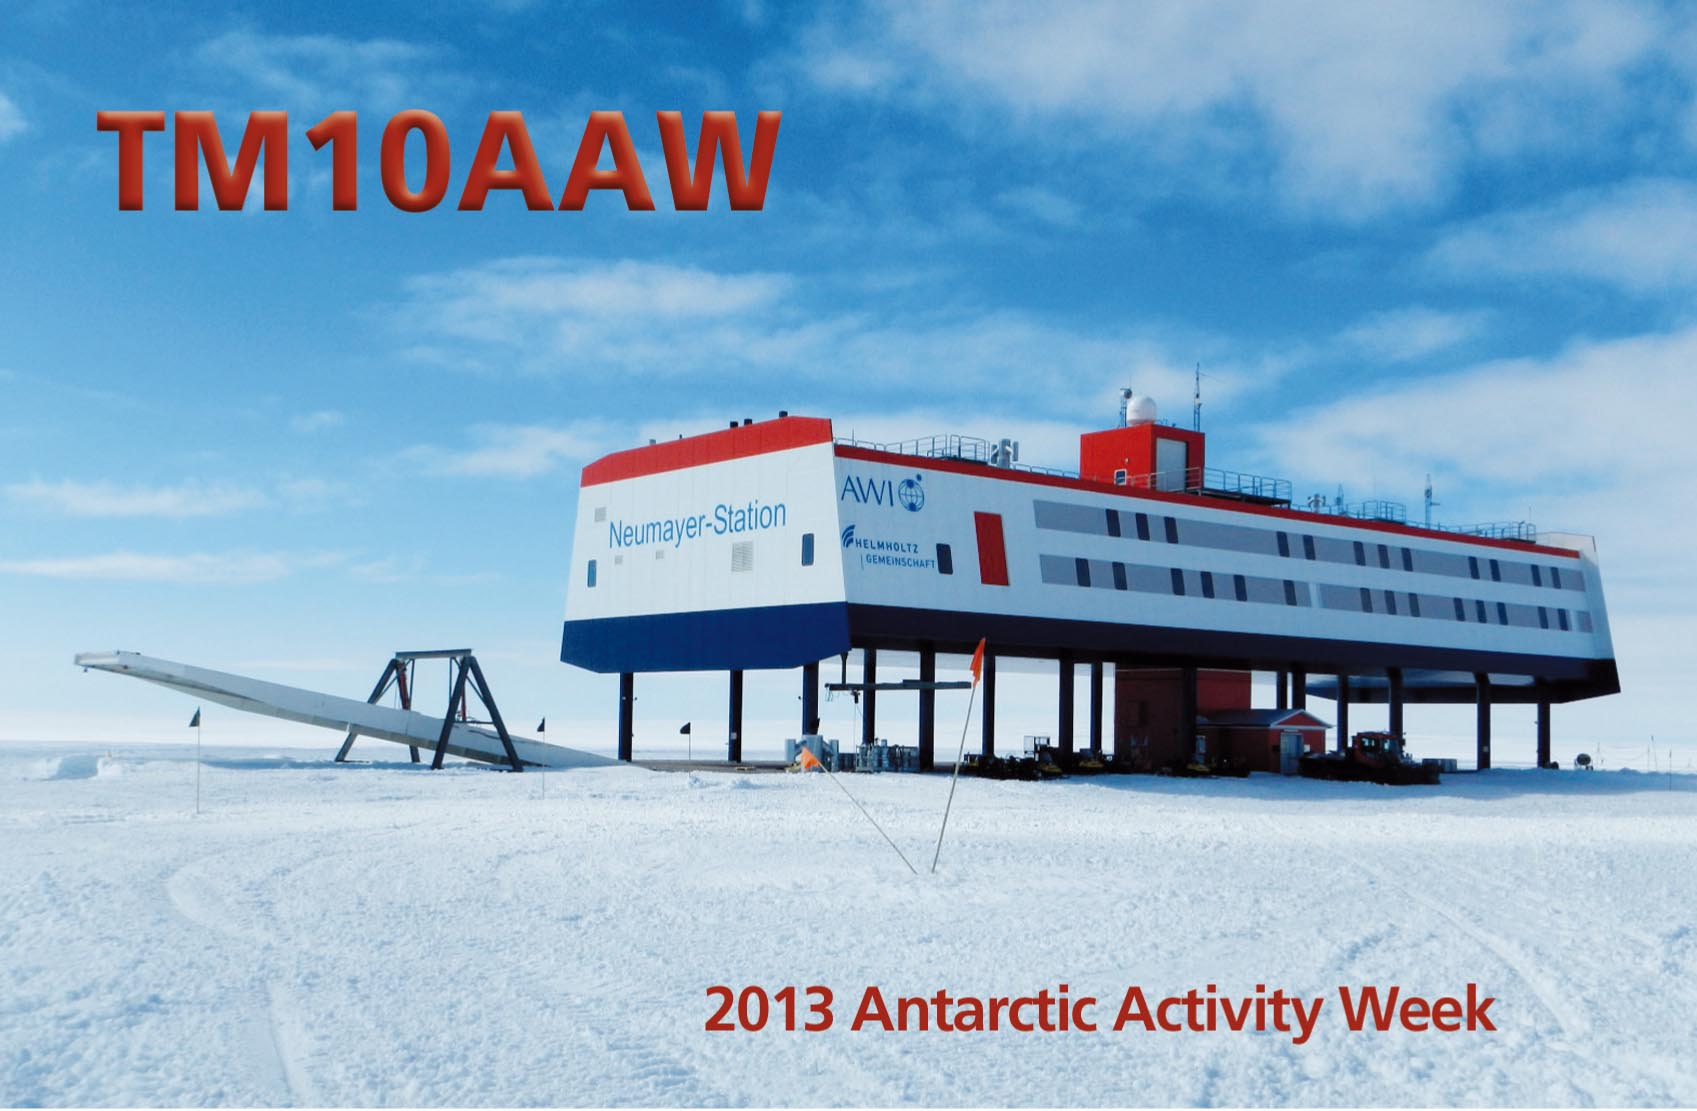 QSL image for TM10AAW